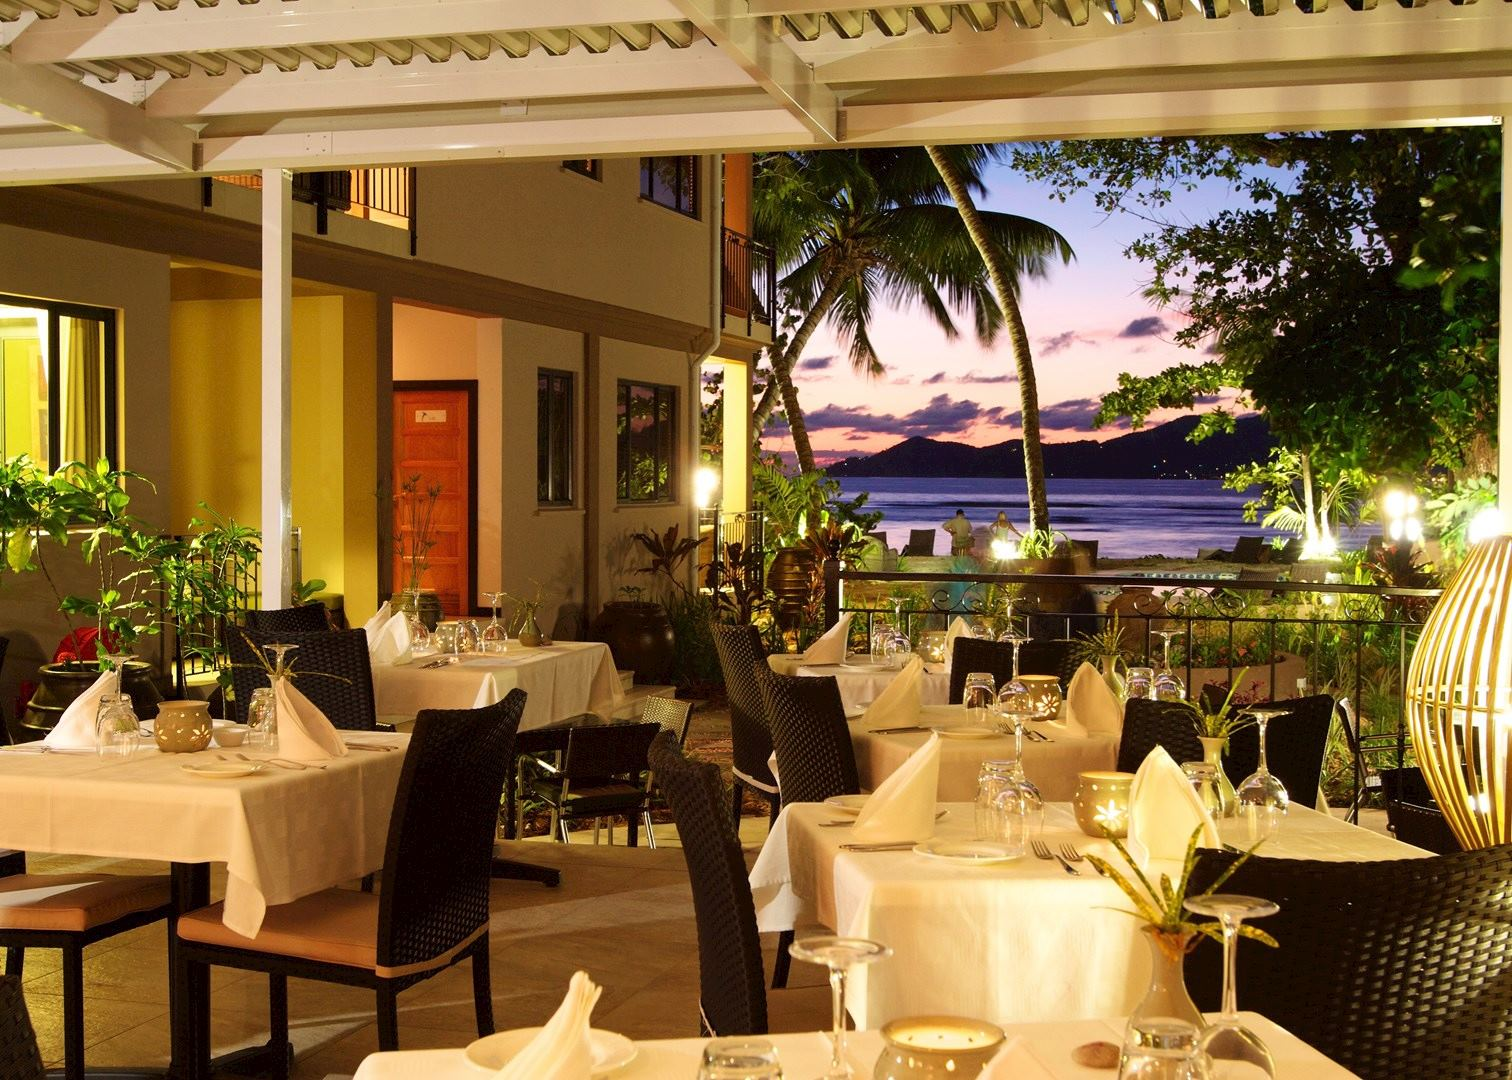 Le repaire boutique hotel hotels in la digue audley travel for Le boutique hotel